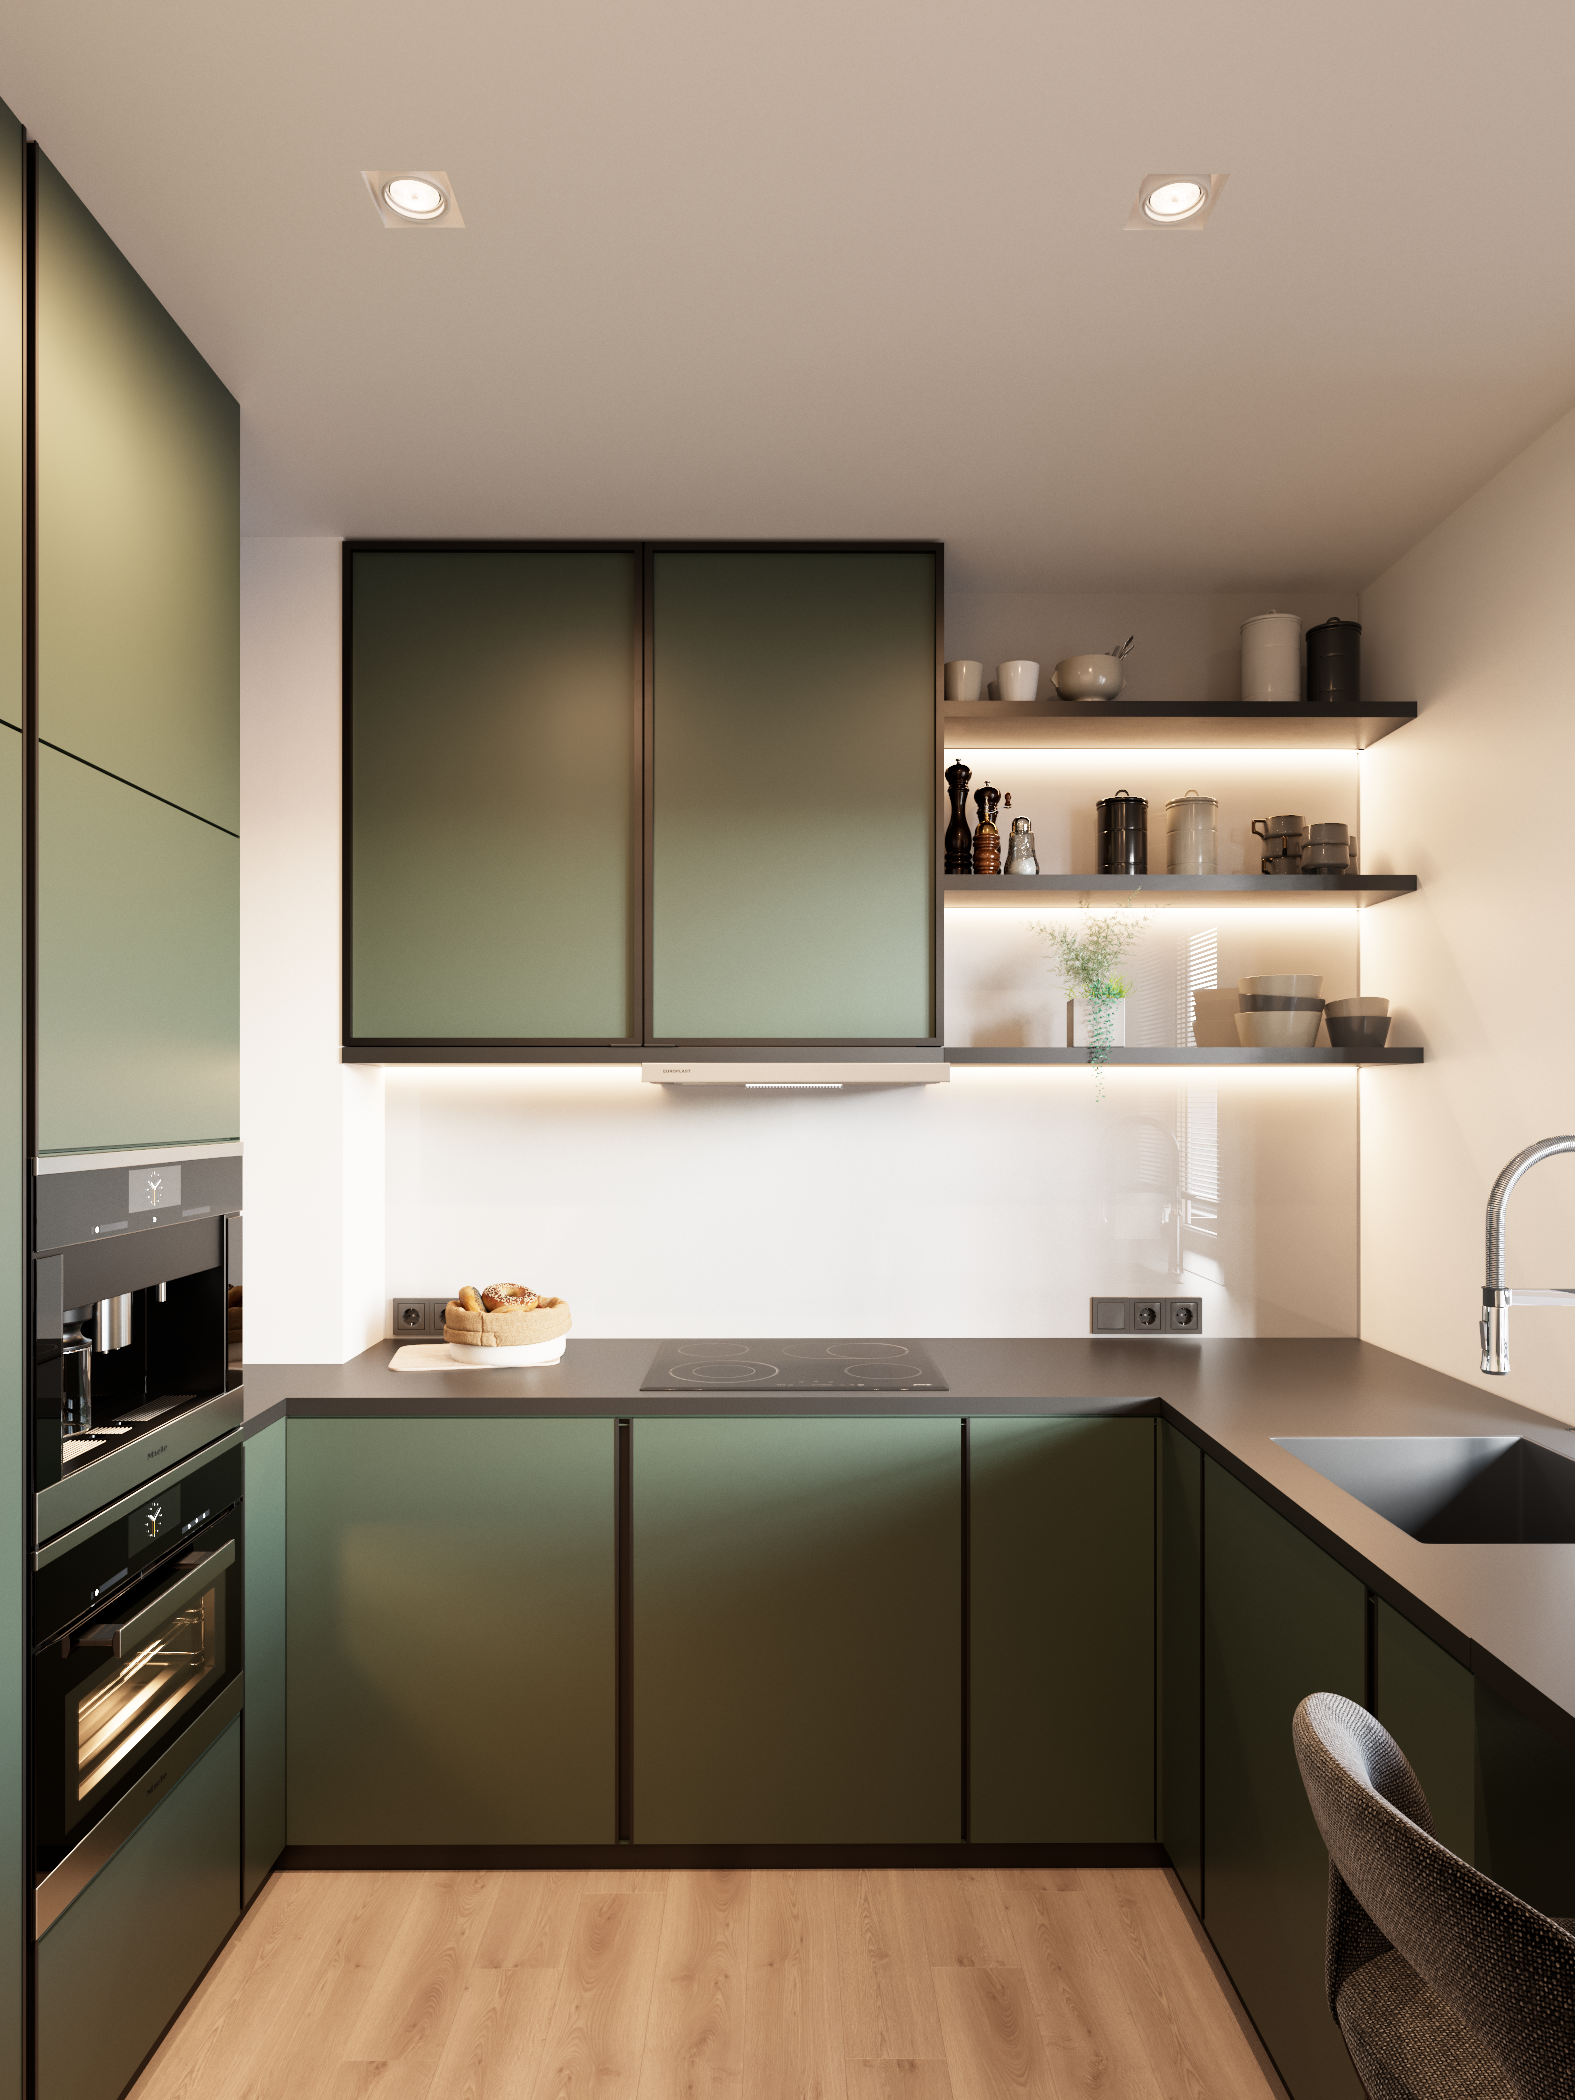 kitchen on behance cuisine moderne cuisine pinterest cuisine verte on a kitchen design id=95864